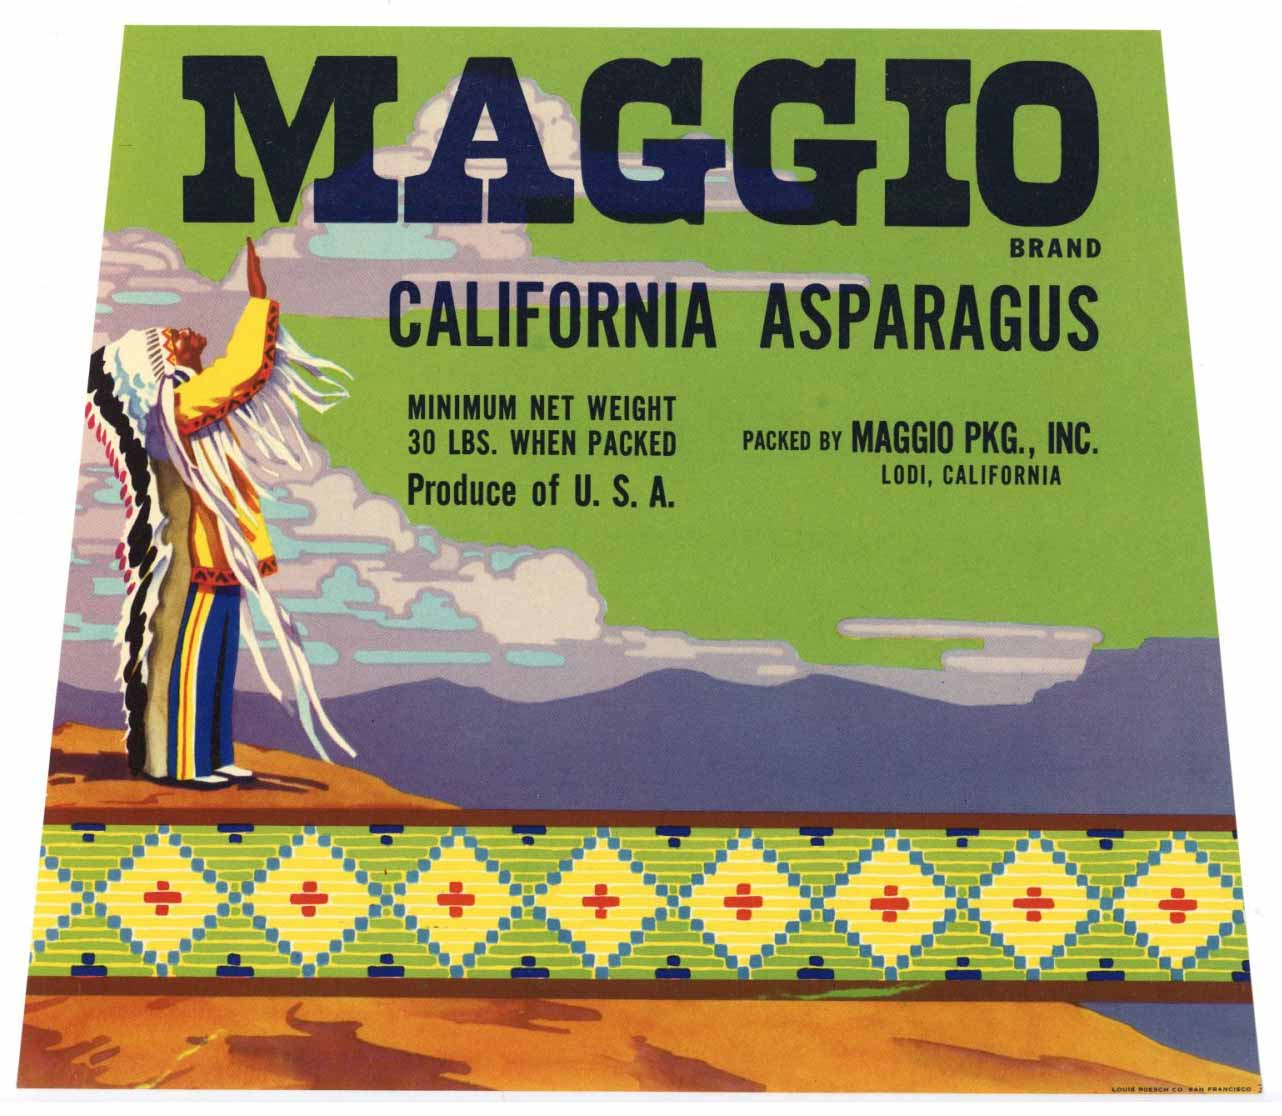 MAGGIO Brand Vintage Asparagus Crate Label (AS038)